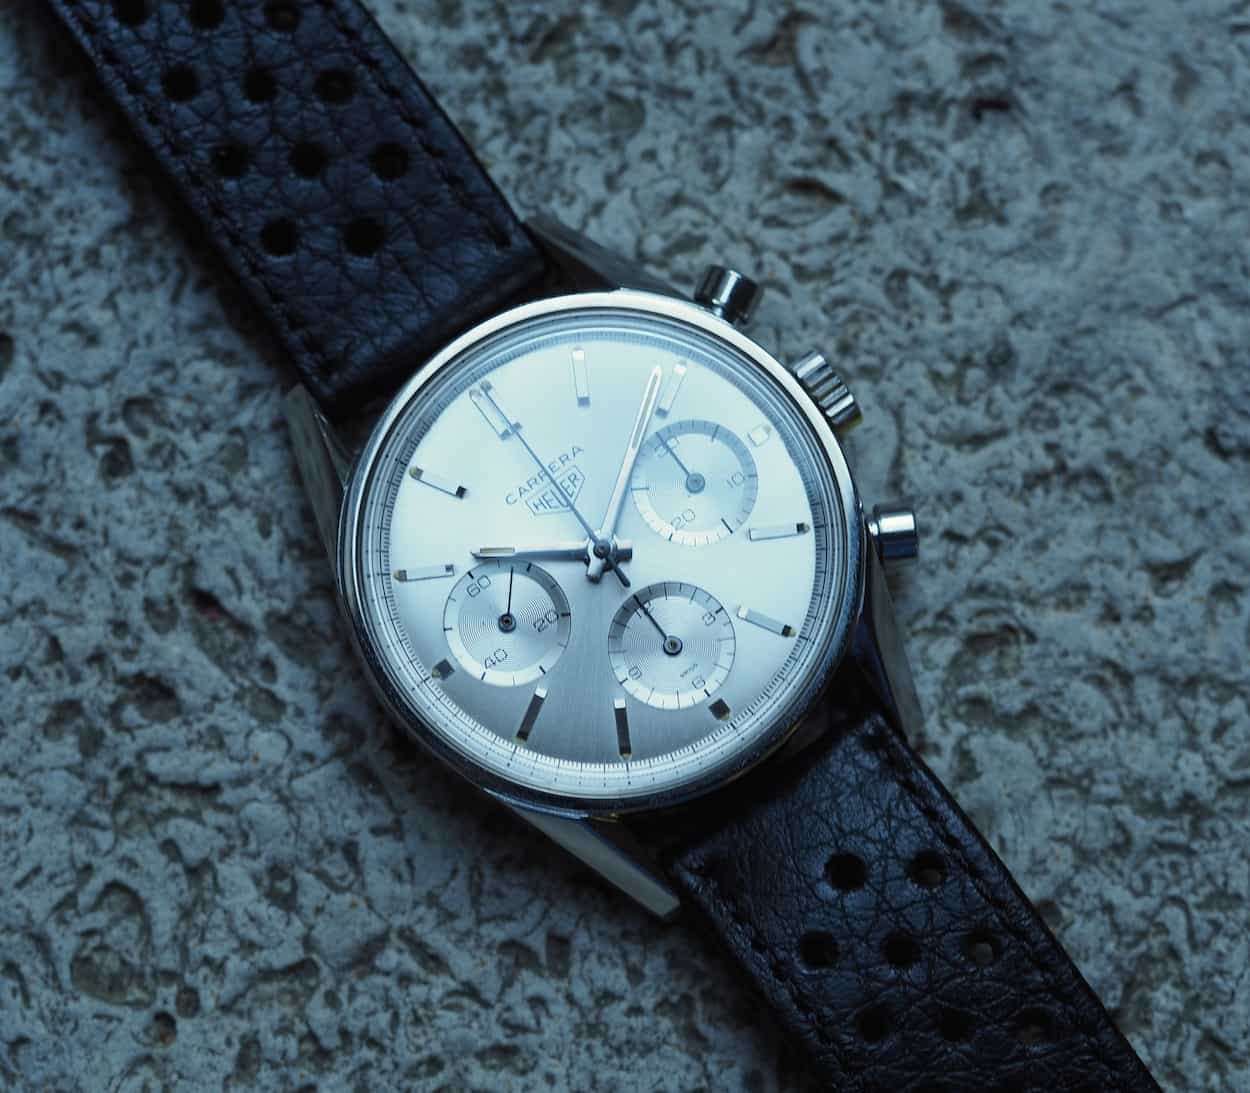 The Heuer Carrera 2447S after dawn